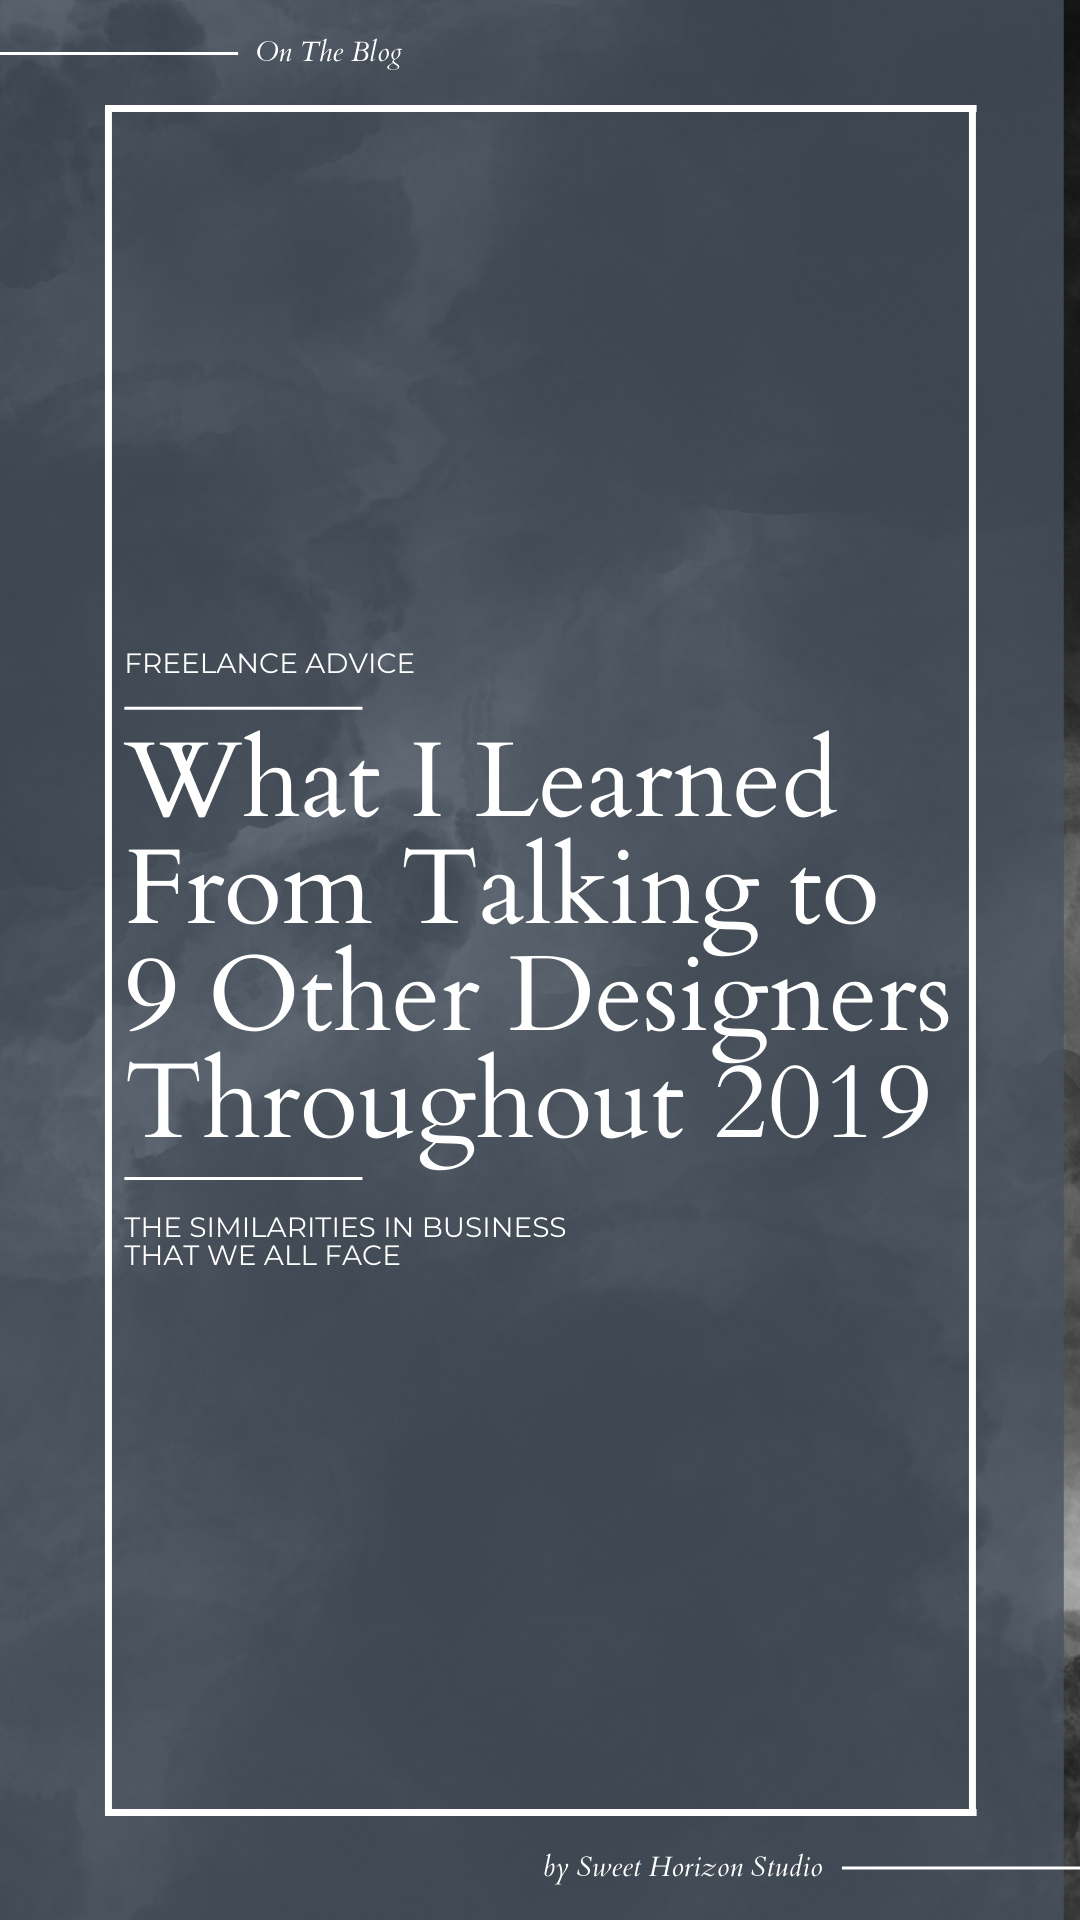 What I learned from talking to 9 other designers throughout 2019 from www.sweethorizonblog.com